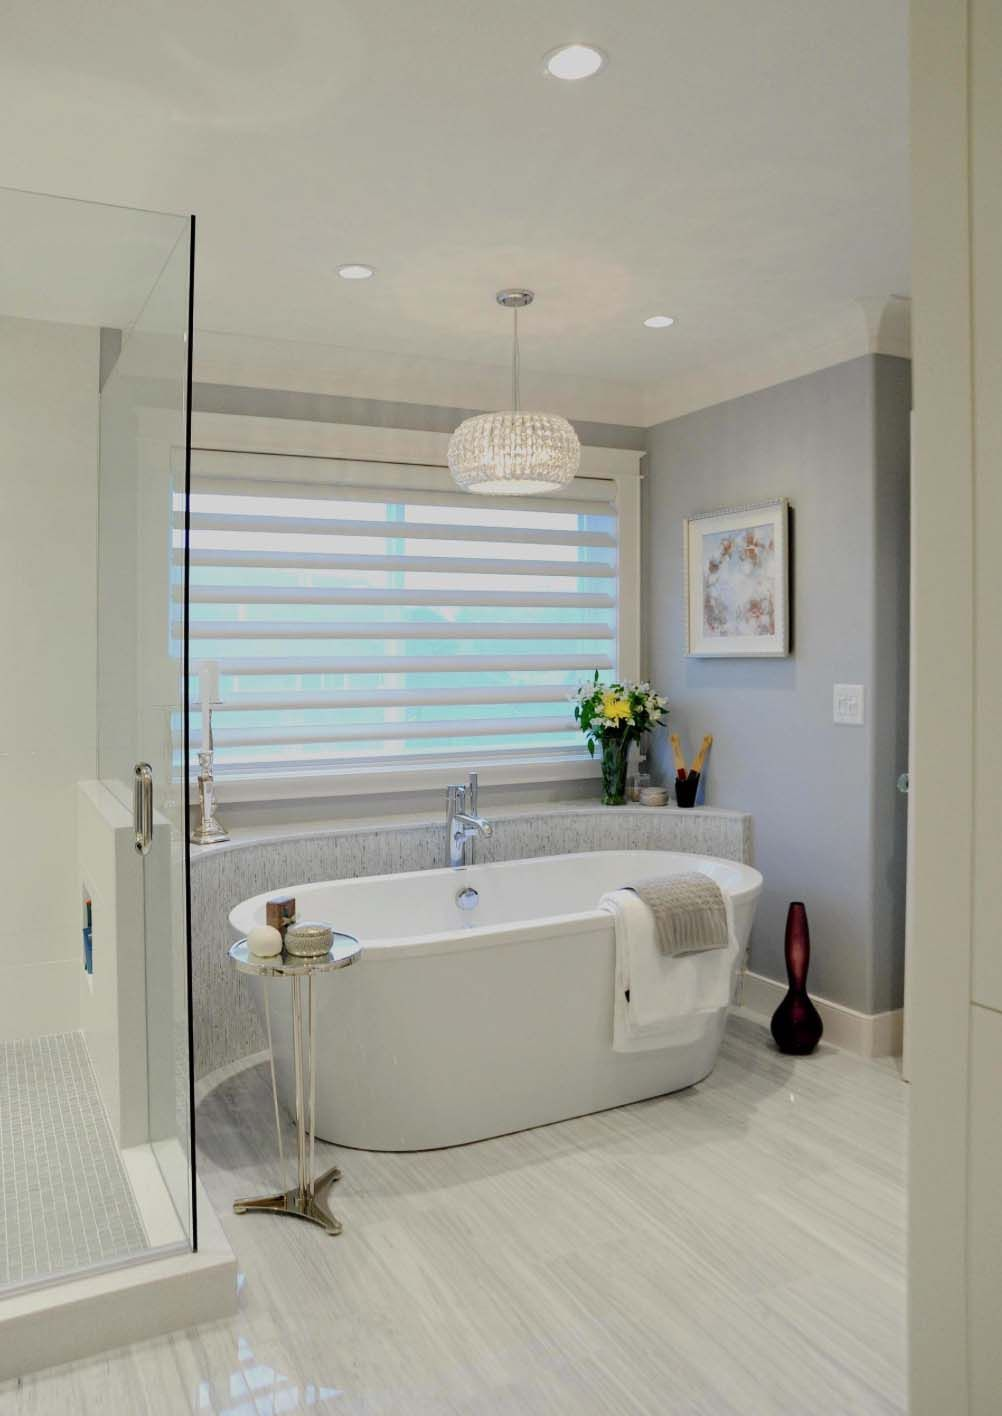 38 Amazing Freestanding Tubs For A Bathroom Spa Sanctuary With